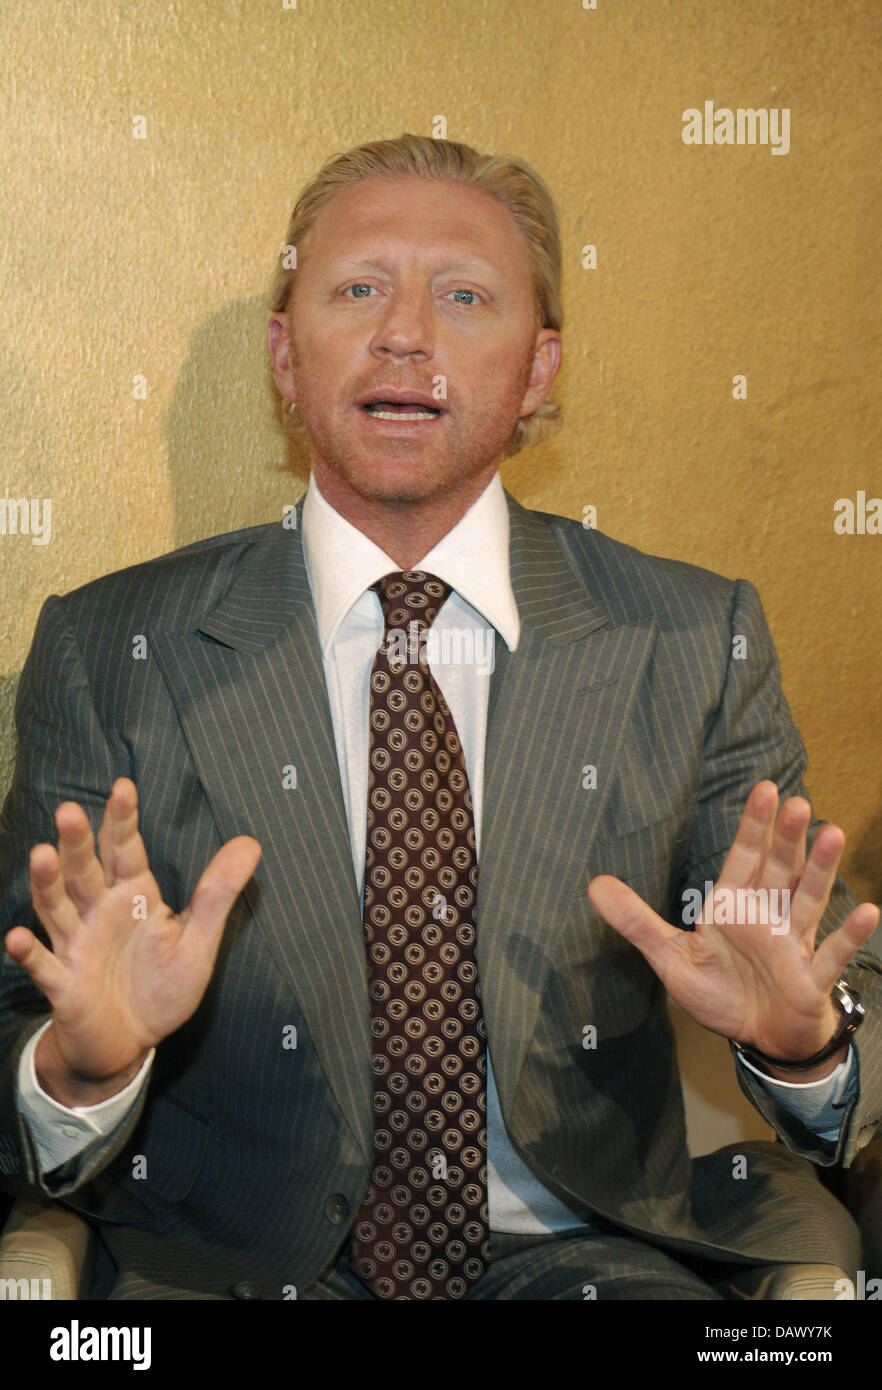 Former tennis pro Boris Becker gestures during the presentation of the new 'Boris Becker' (BB) tennis collection - Stock Image